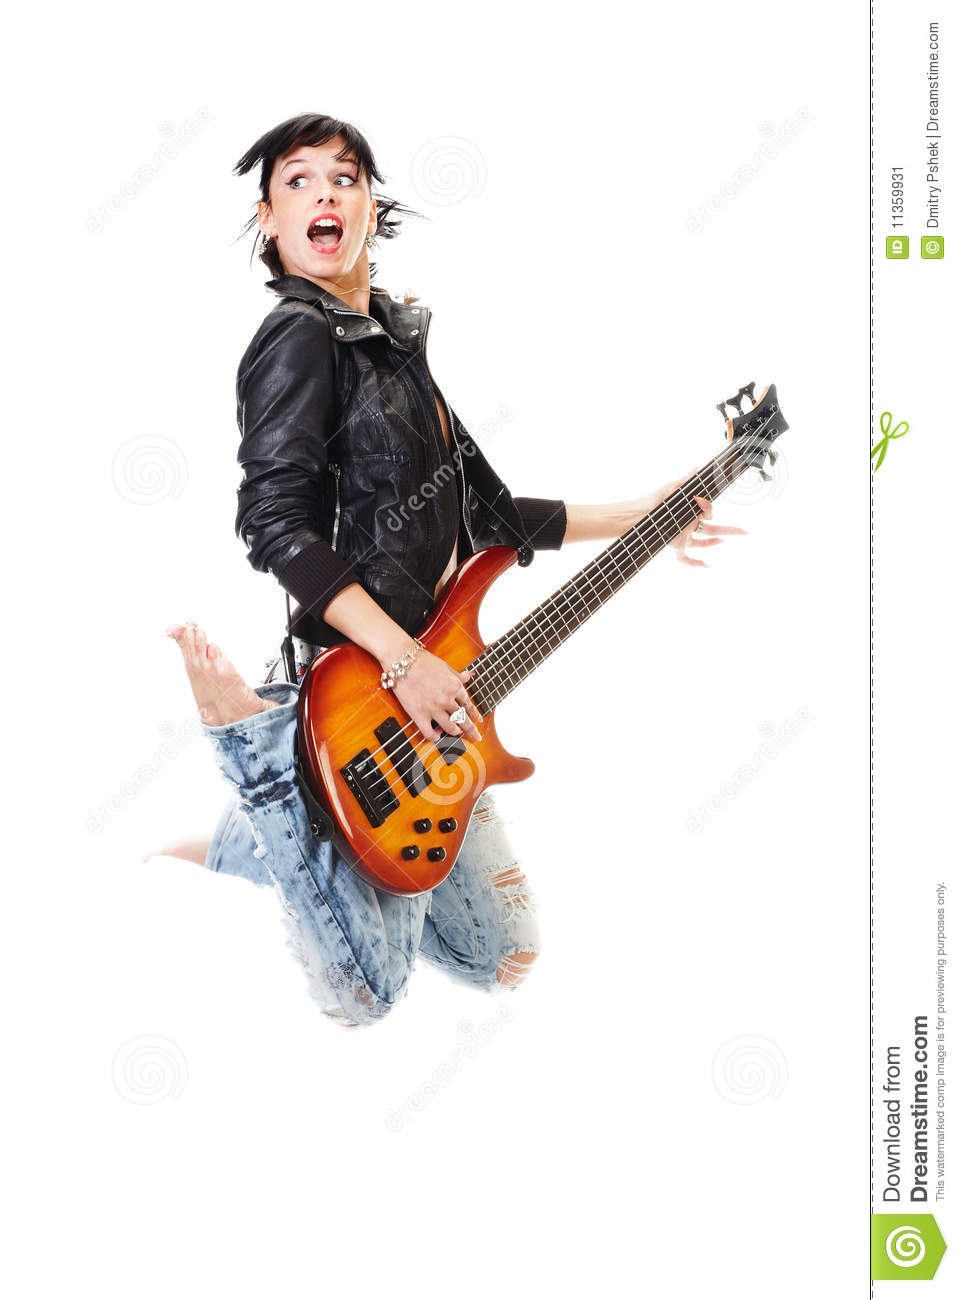 Beautiful rock-n-roll girl jumping with guitar